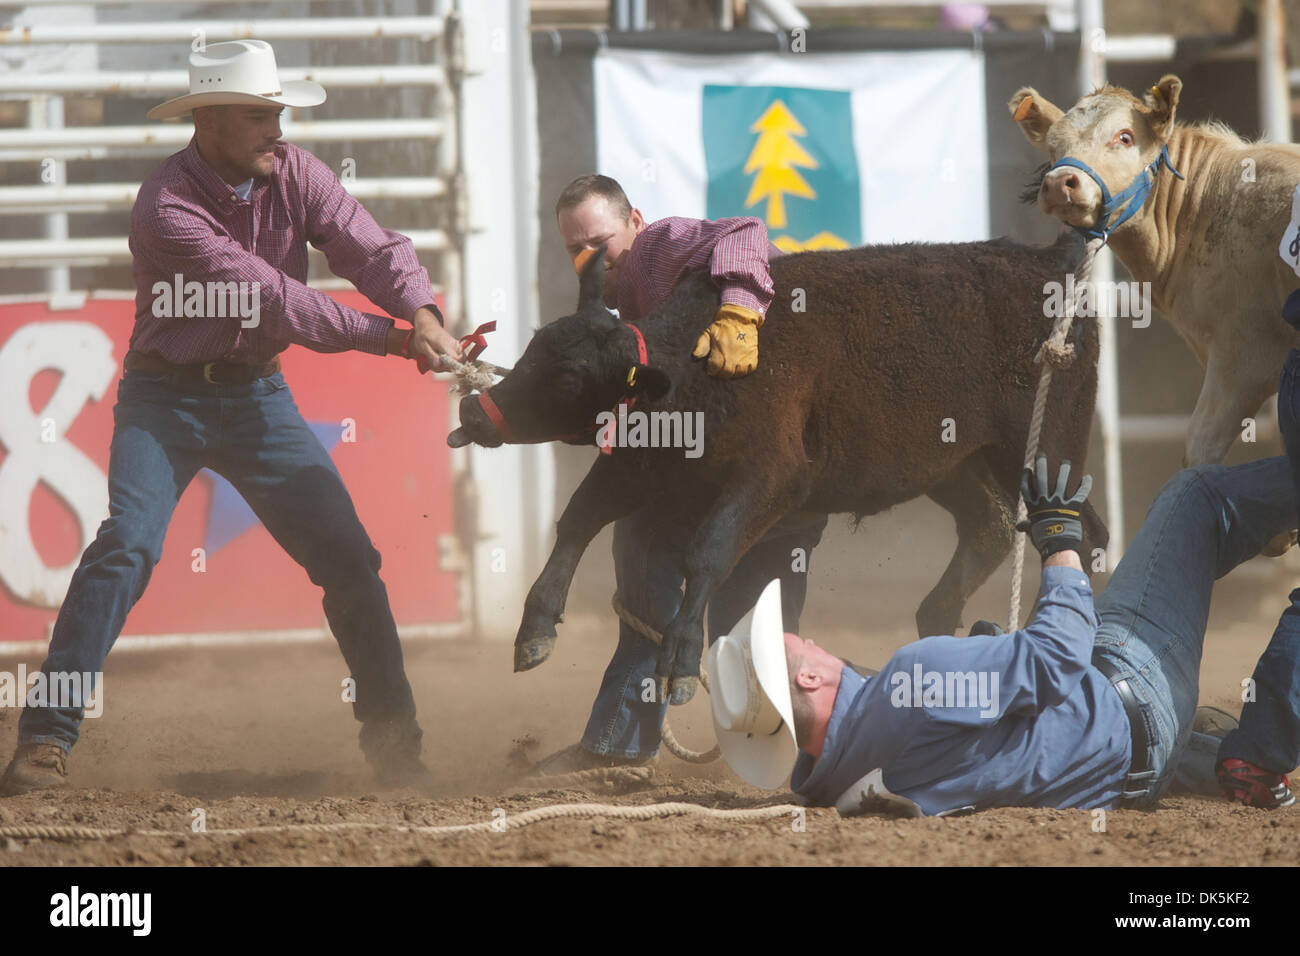 May 7, 2011 - Sonora, California, U.S - Contestants compete in the Calf Scramble at the Mother Lode Round-Up in Sonora, CA. (Credit Image: © Matt Cohen/Southcreek Global/ZUMAPRESS.com) - Stock Image